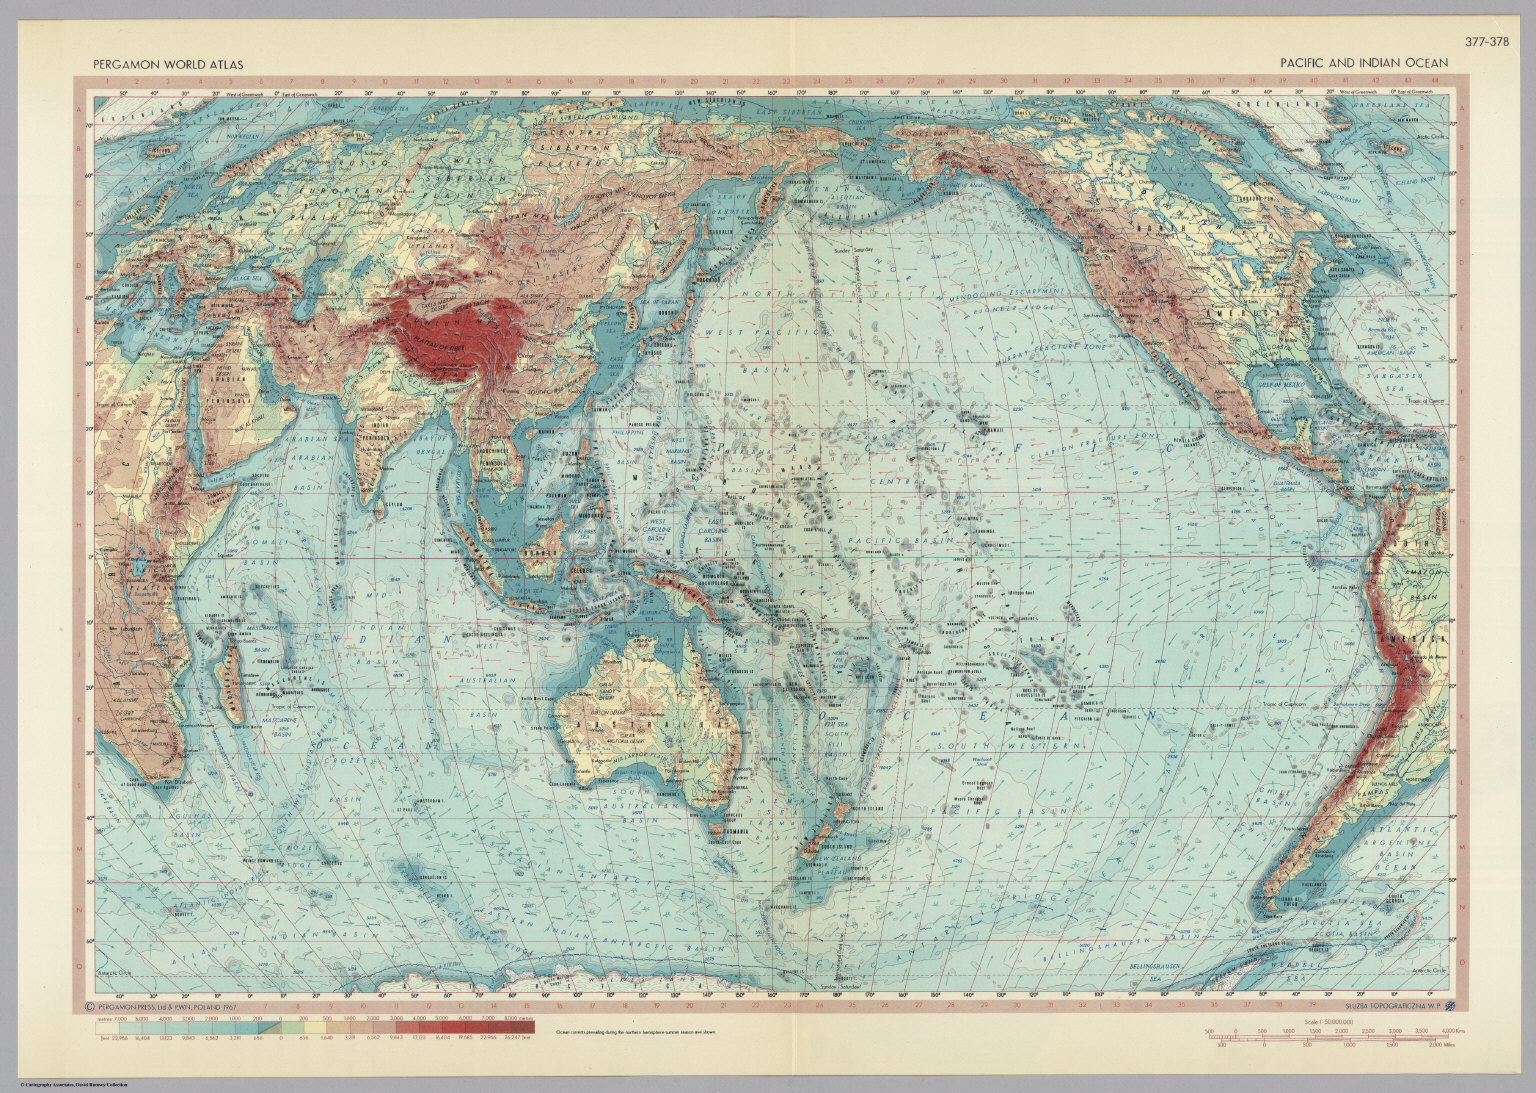 Pacific and indian ocean pergamon world atlas david rumsey pergamon world atlas gumiabroncs Image collections